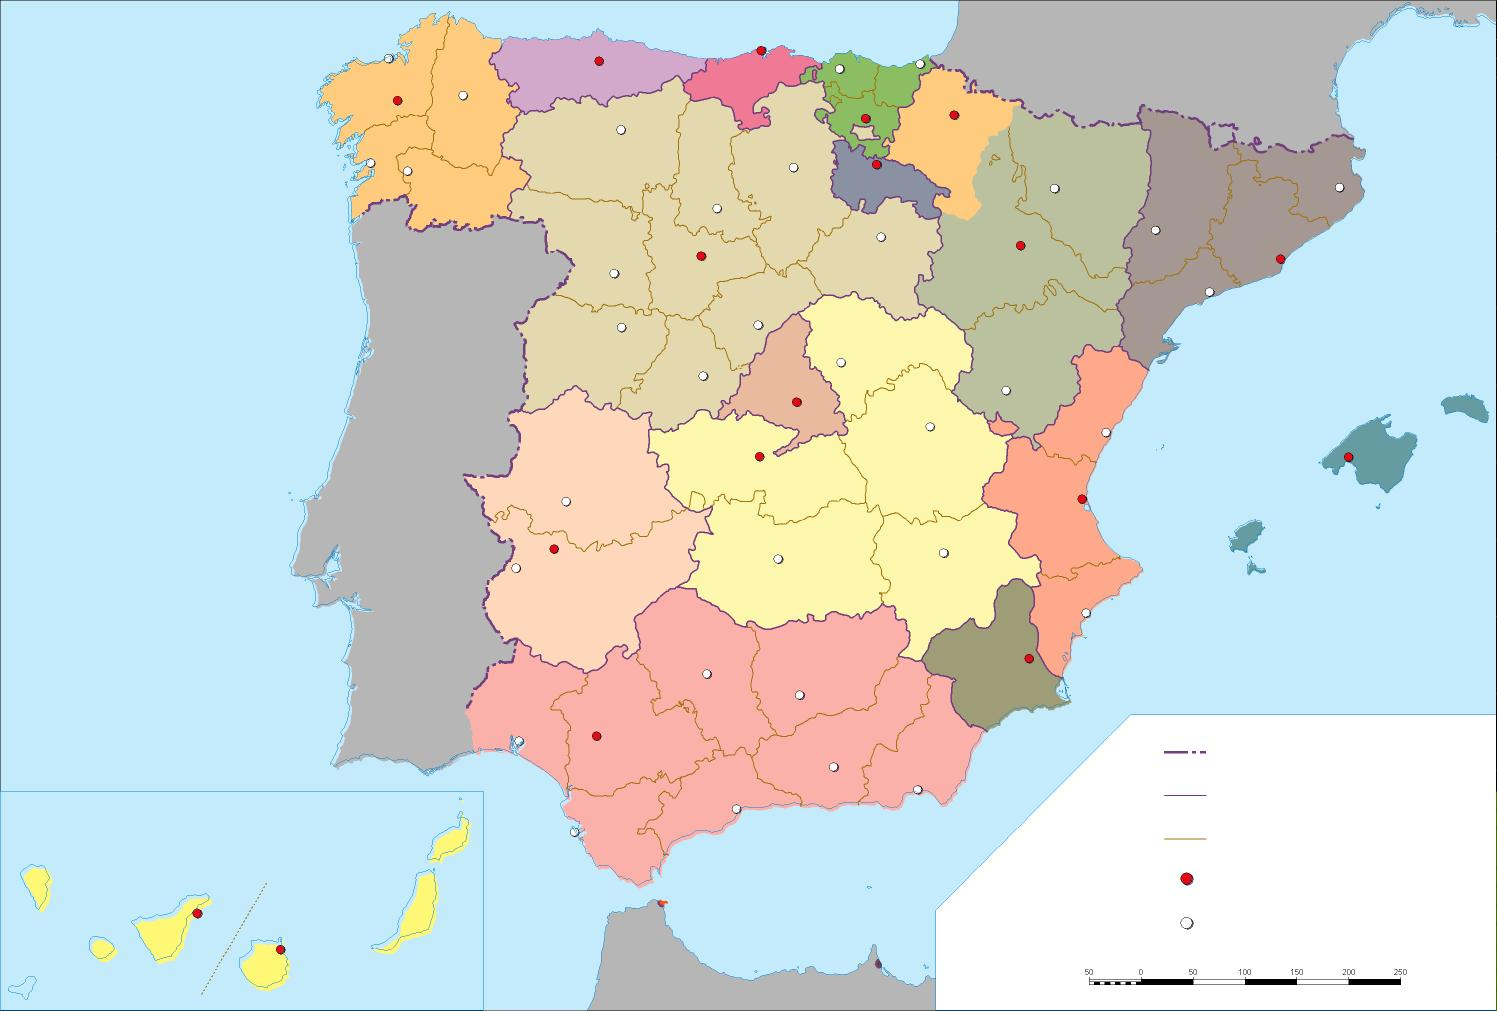 Spain Autonomous Communities colored blank map